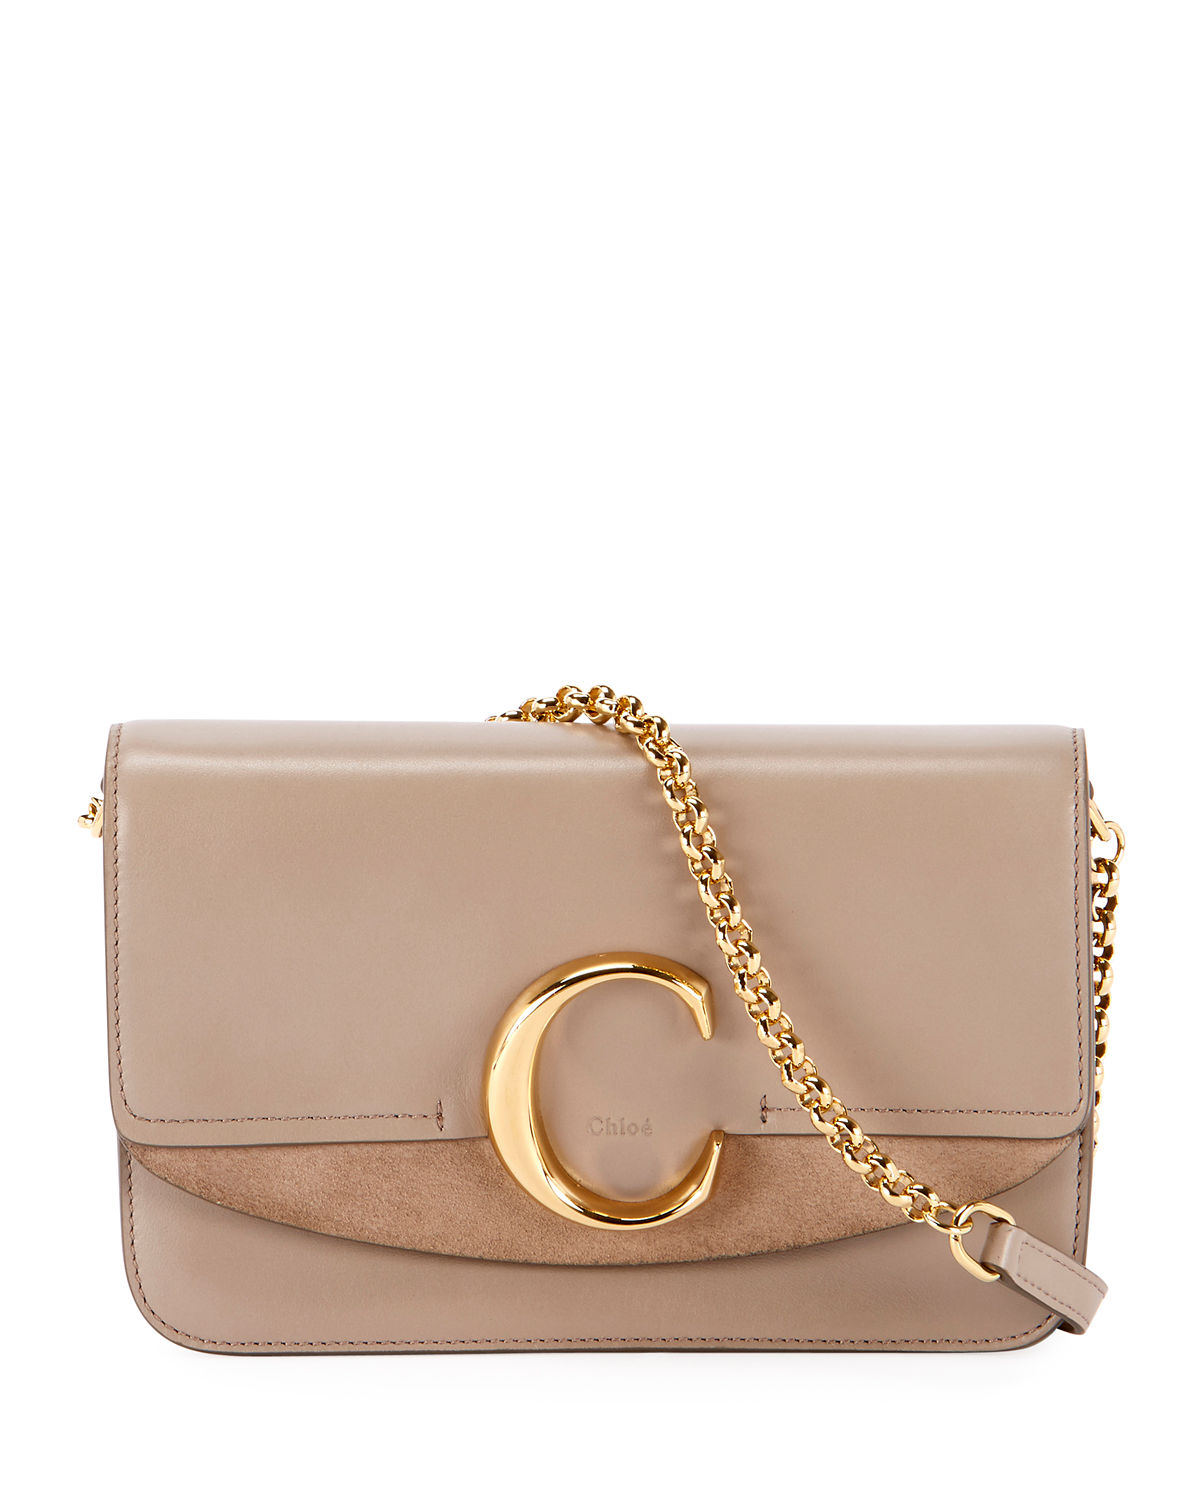 C Shiny Suede Calfskin Clutch With Chain